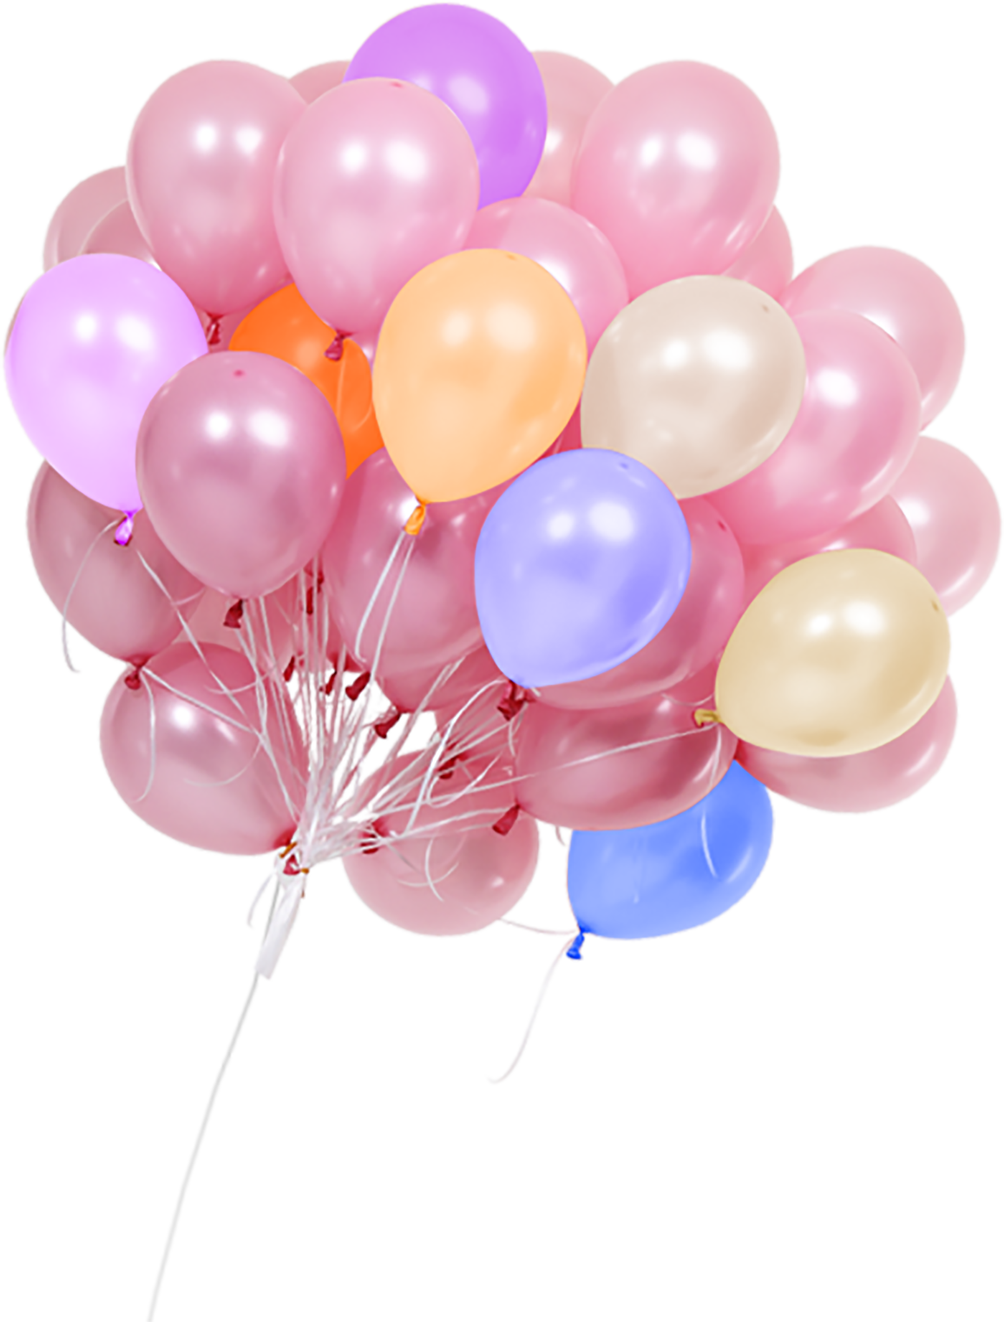 Real balloons png Transparent Images